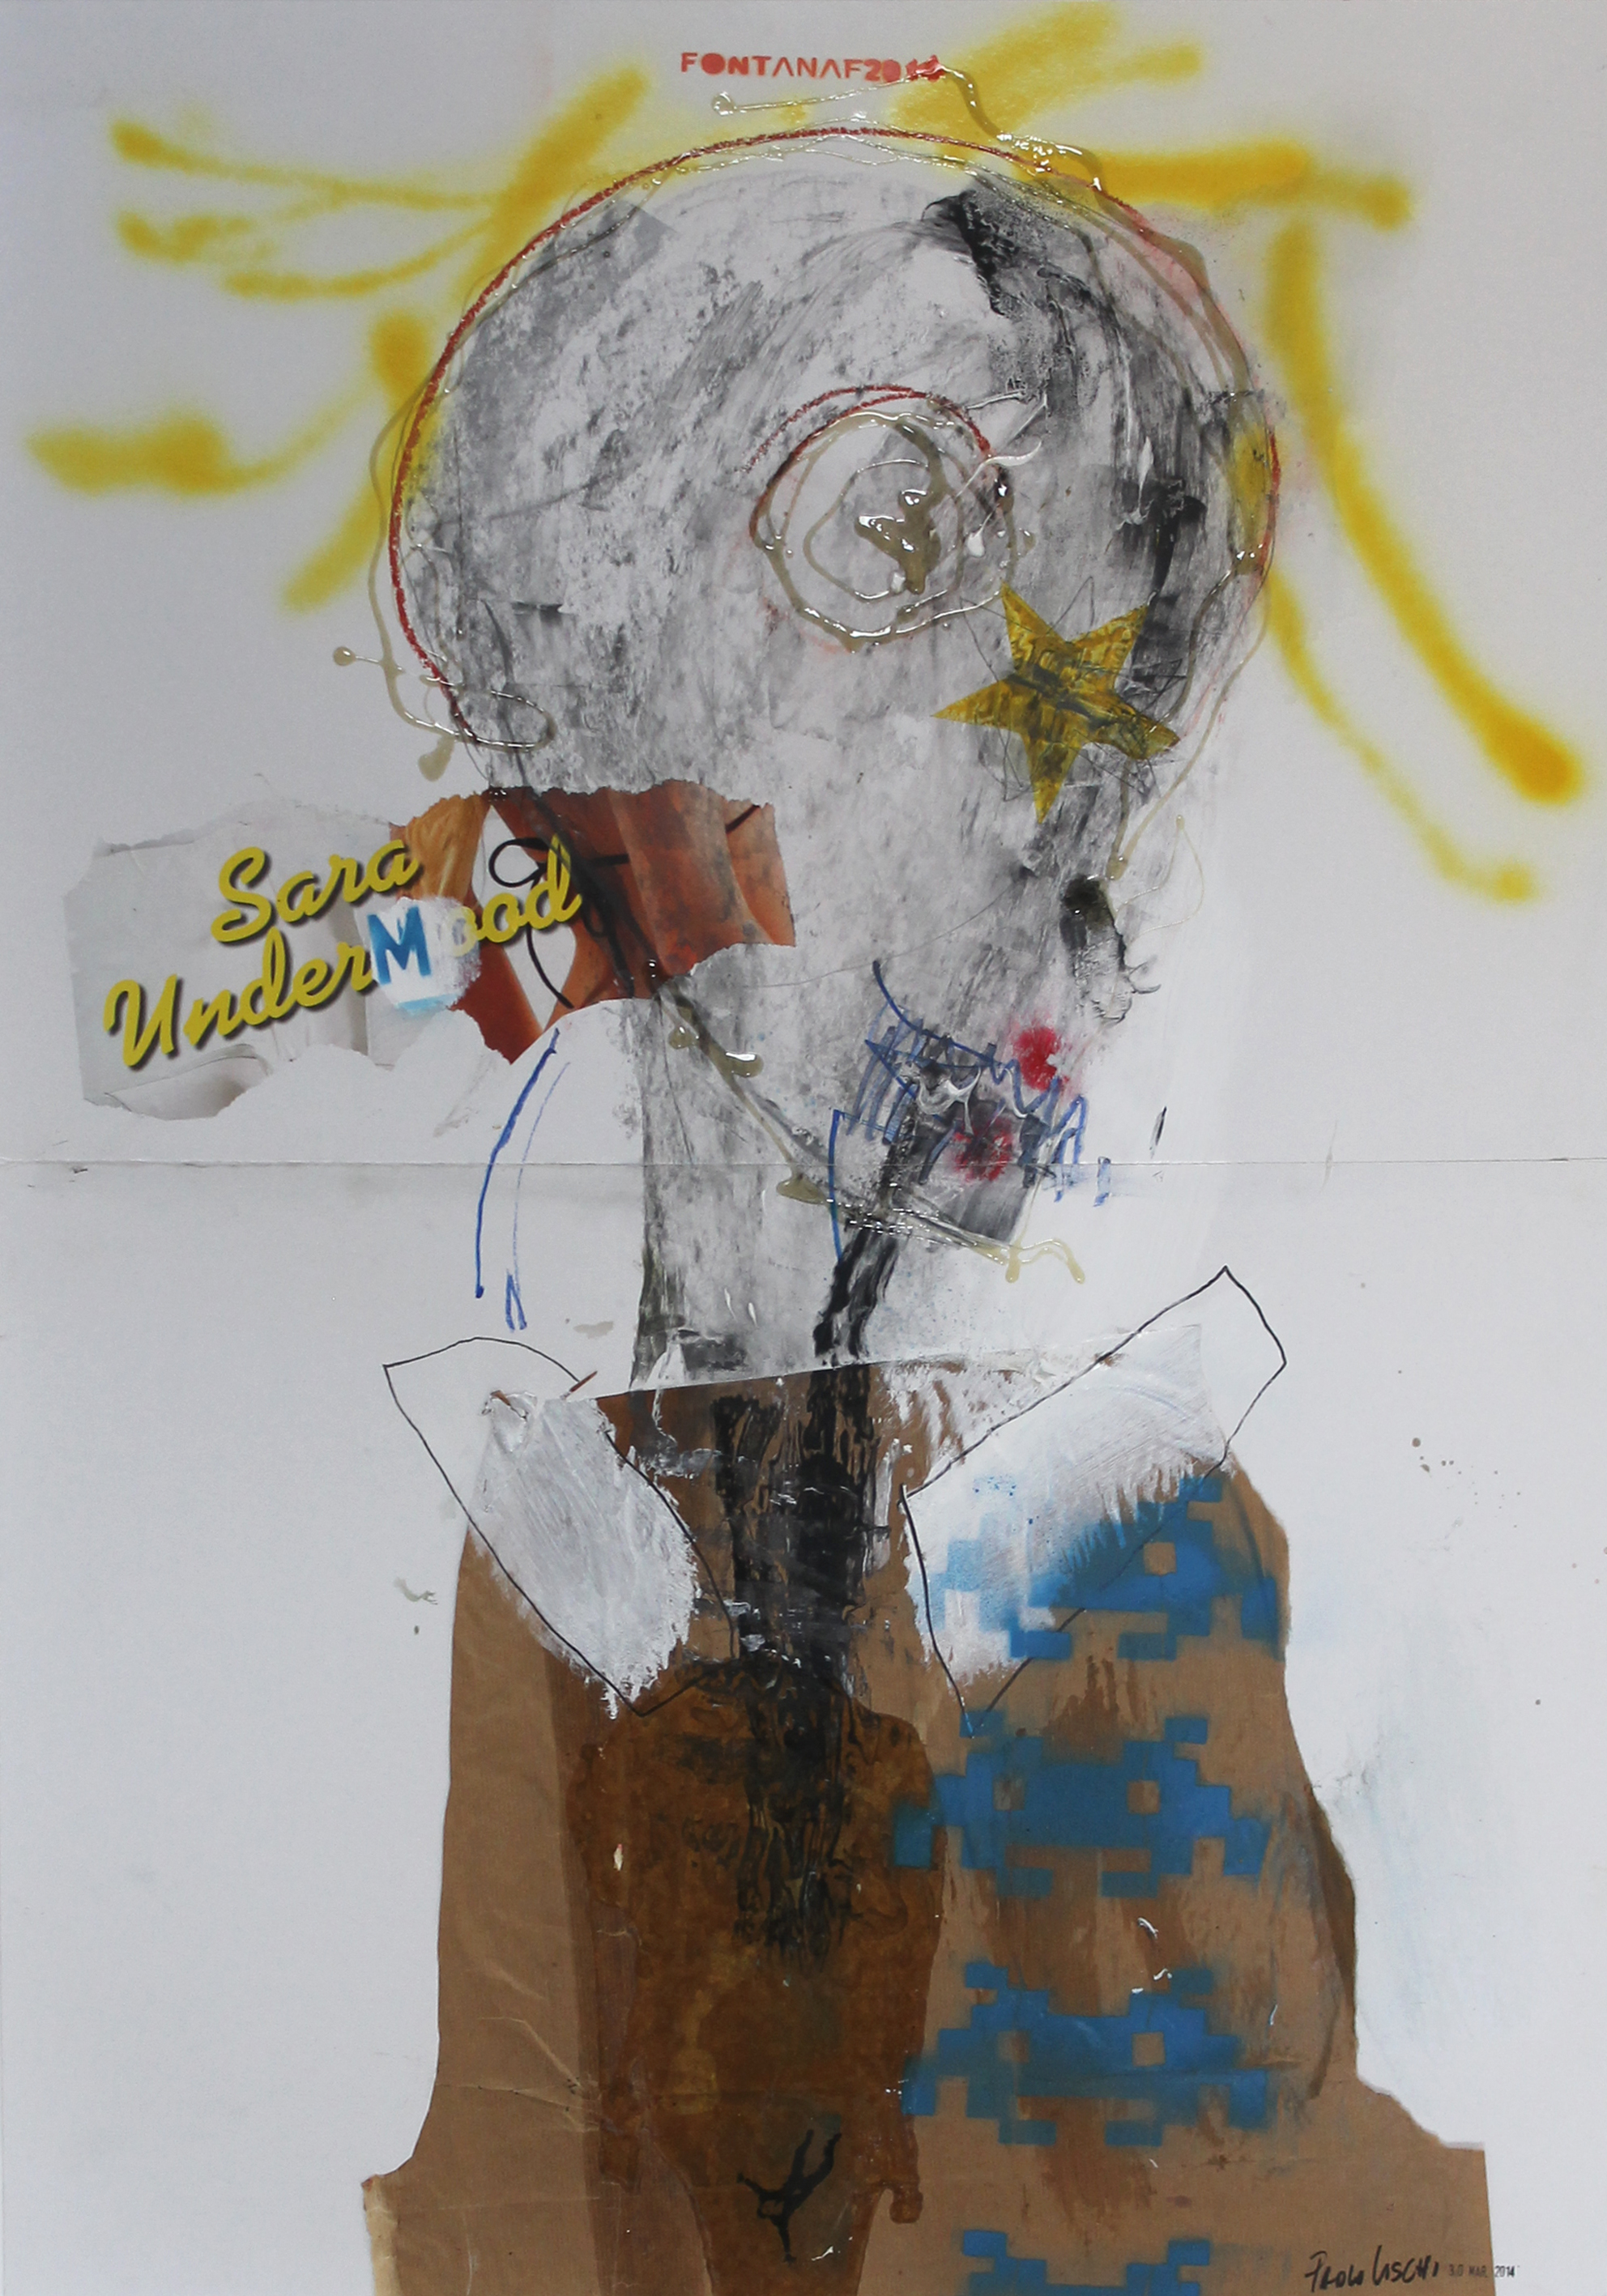 SARA UNDERMOOD  IXED MEDIA ON PAPER - 70x100cm 2014